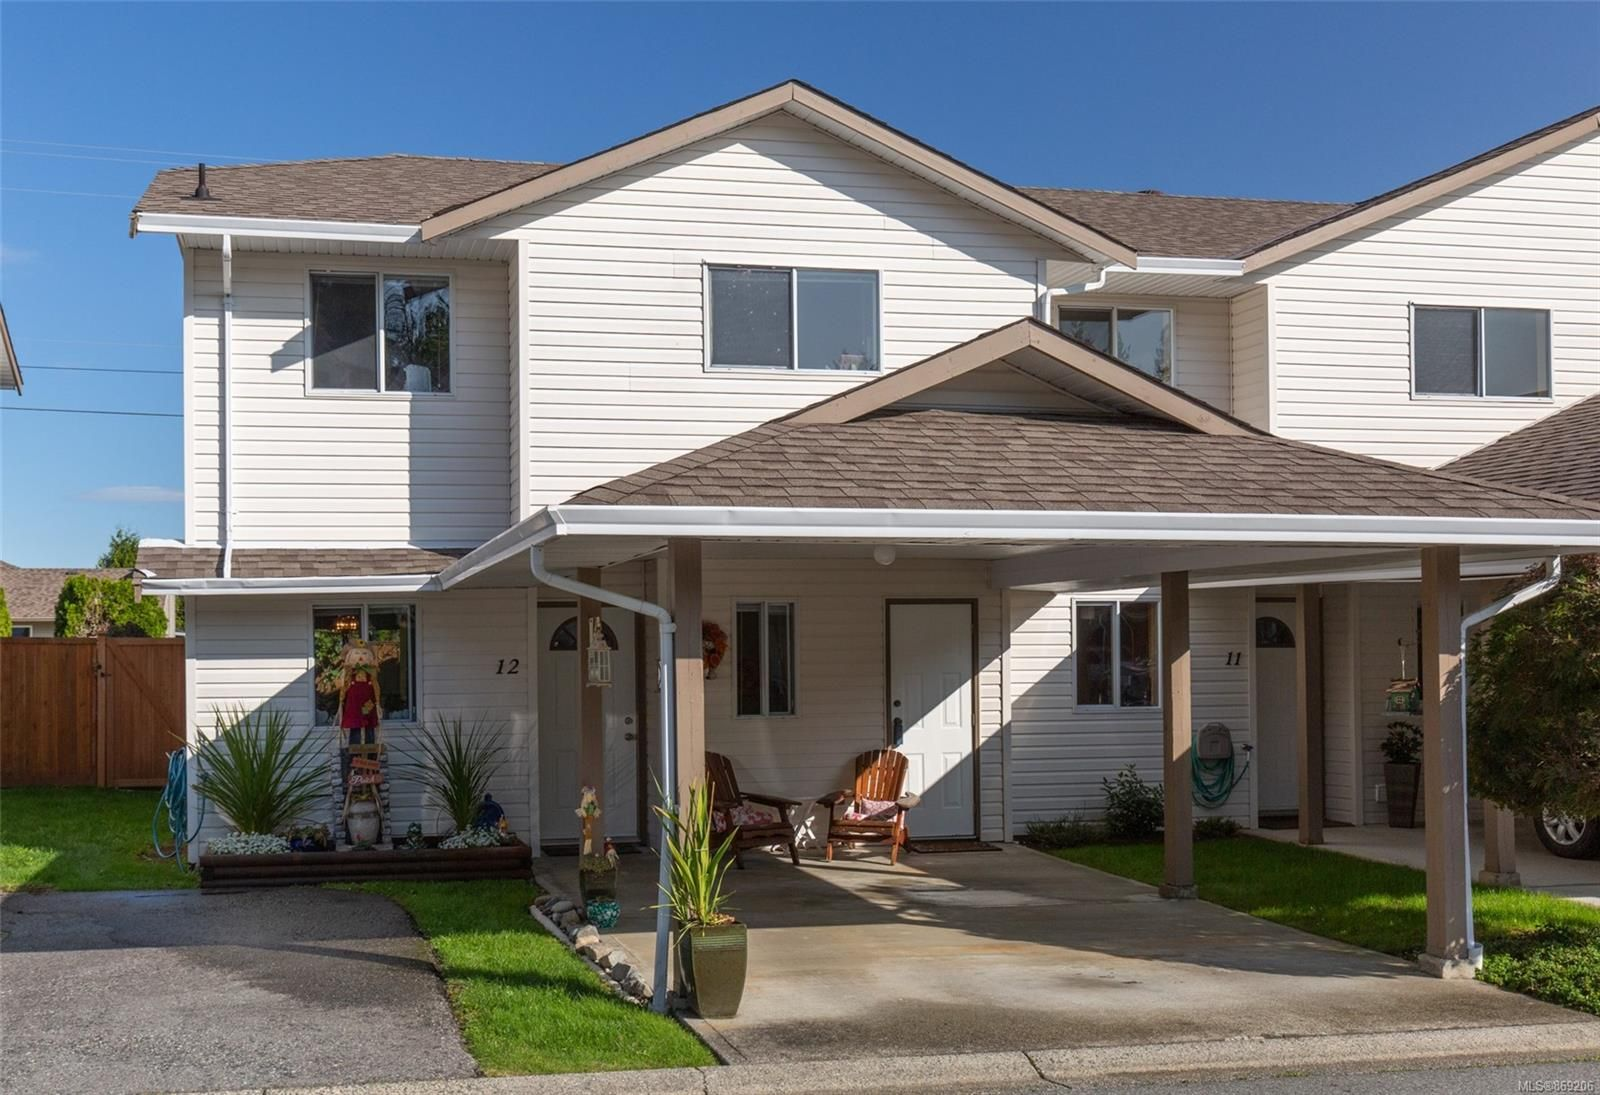 Main Photo: 12 941 Malone Rd in : Du Ladysmith Row/Townhouse for sale (Duncan)  : MLS®# 869206